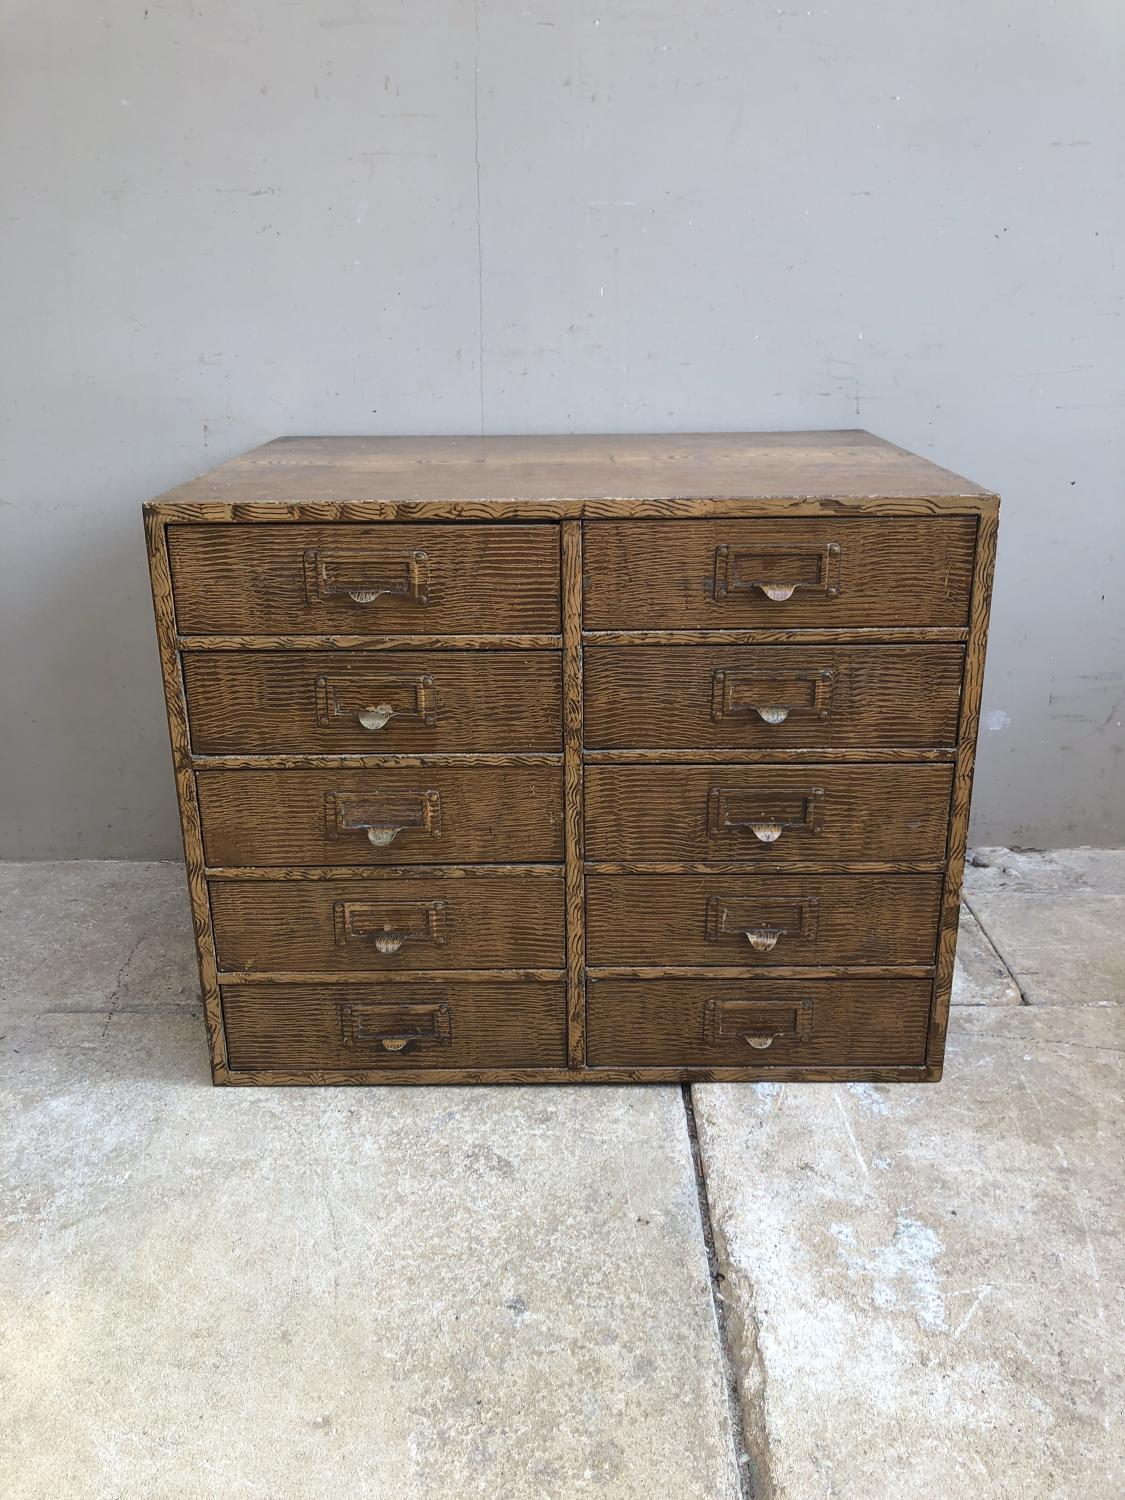 Early 20th Century Metal Bank of 10 Drawers - Fantastic Original Paint